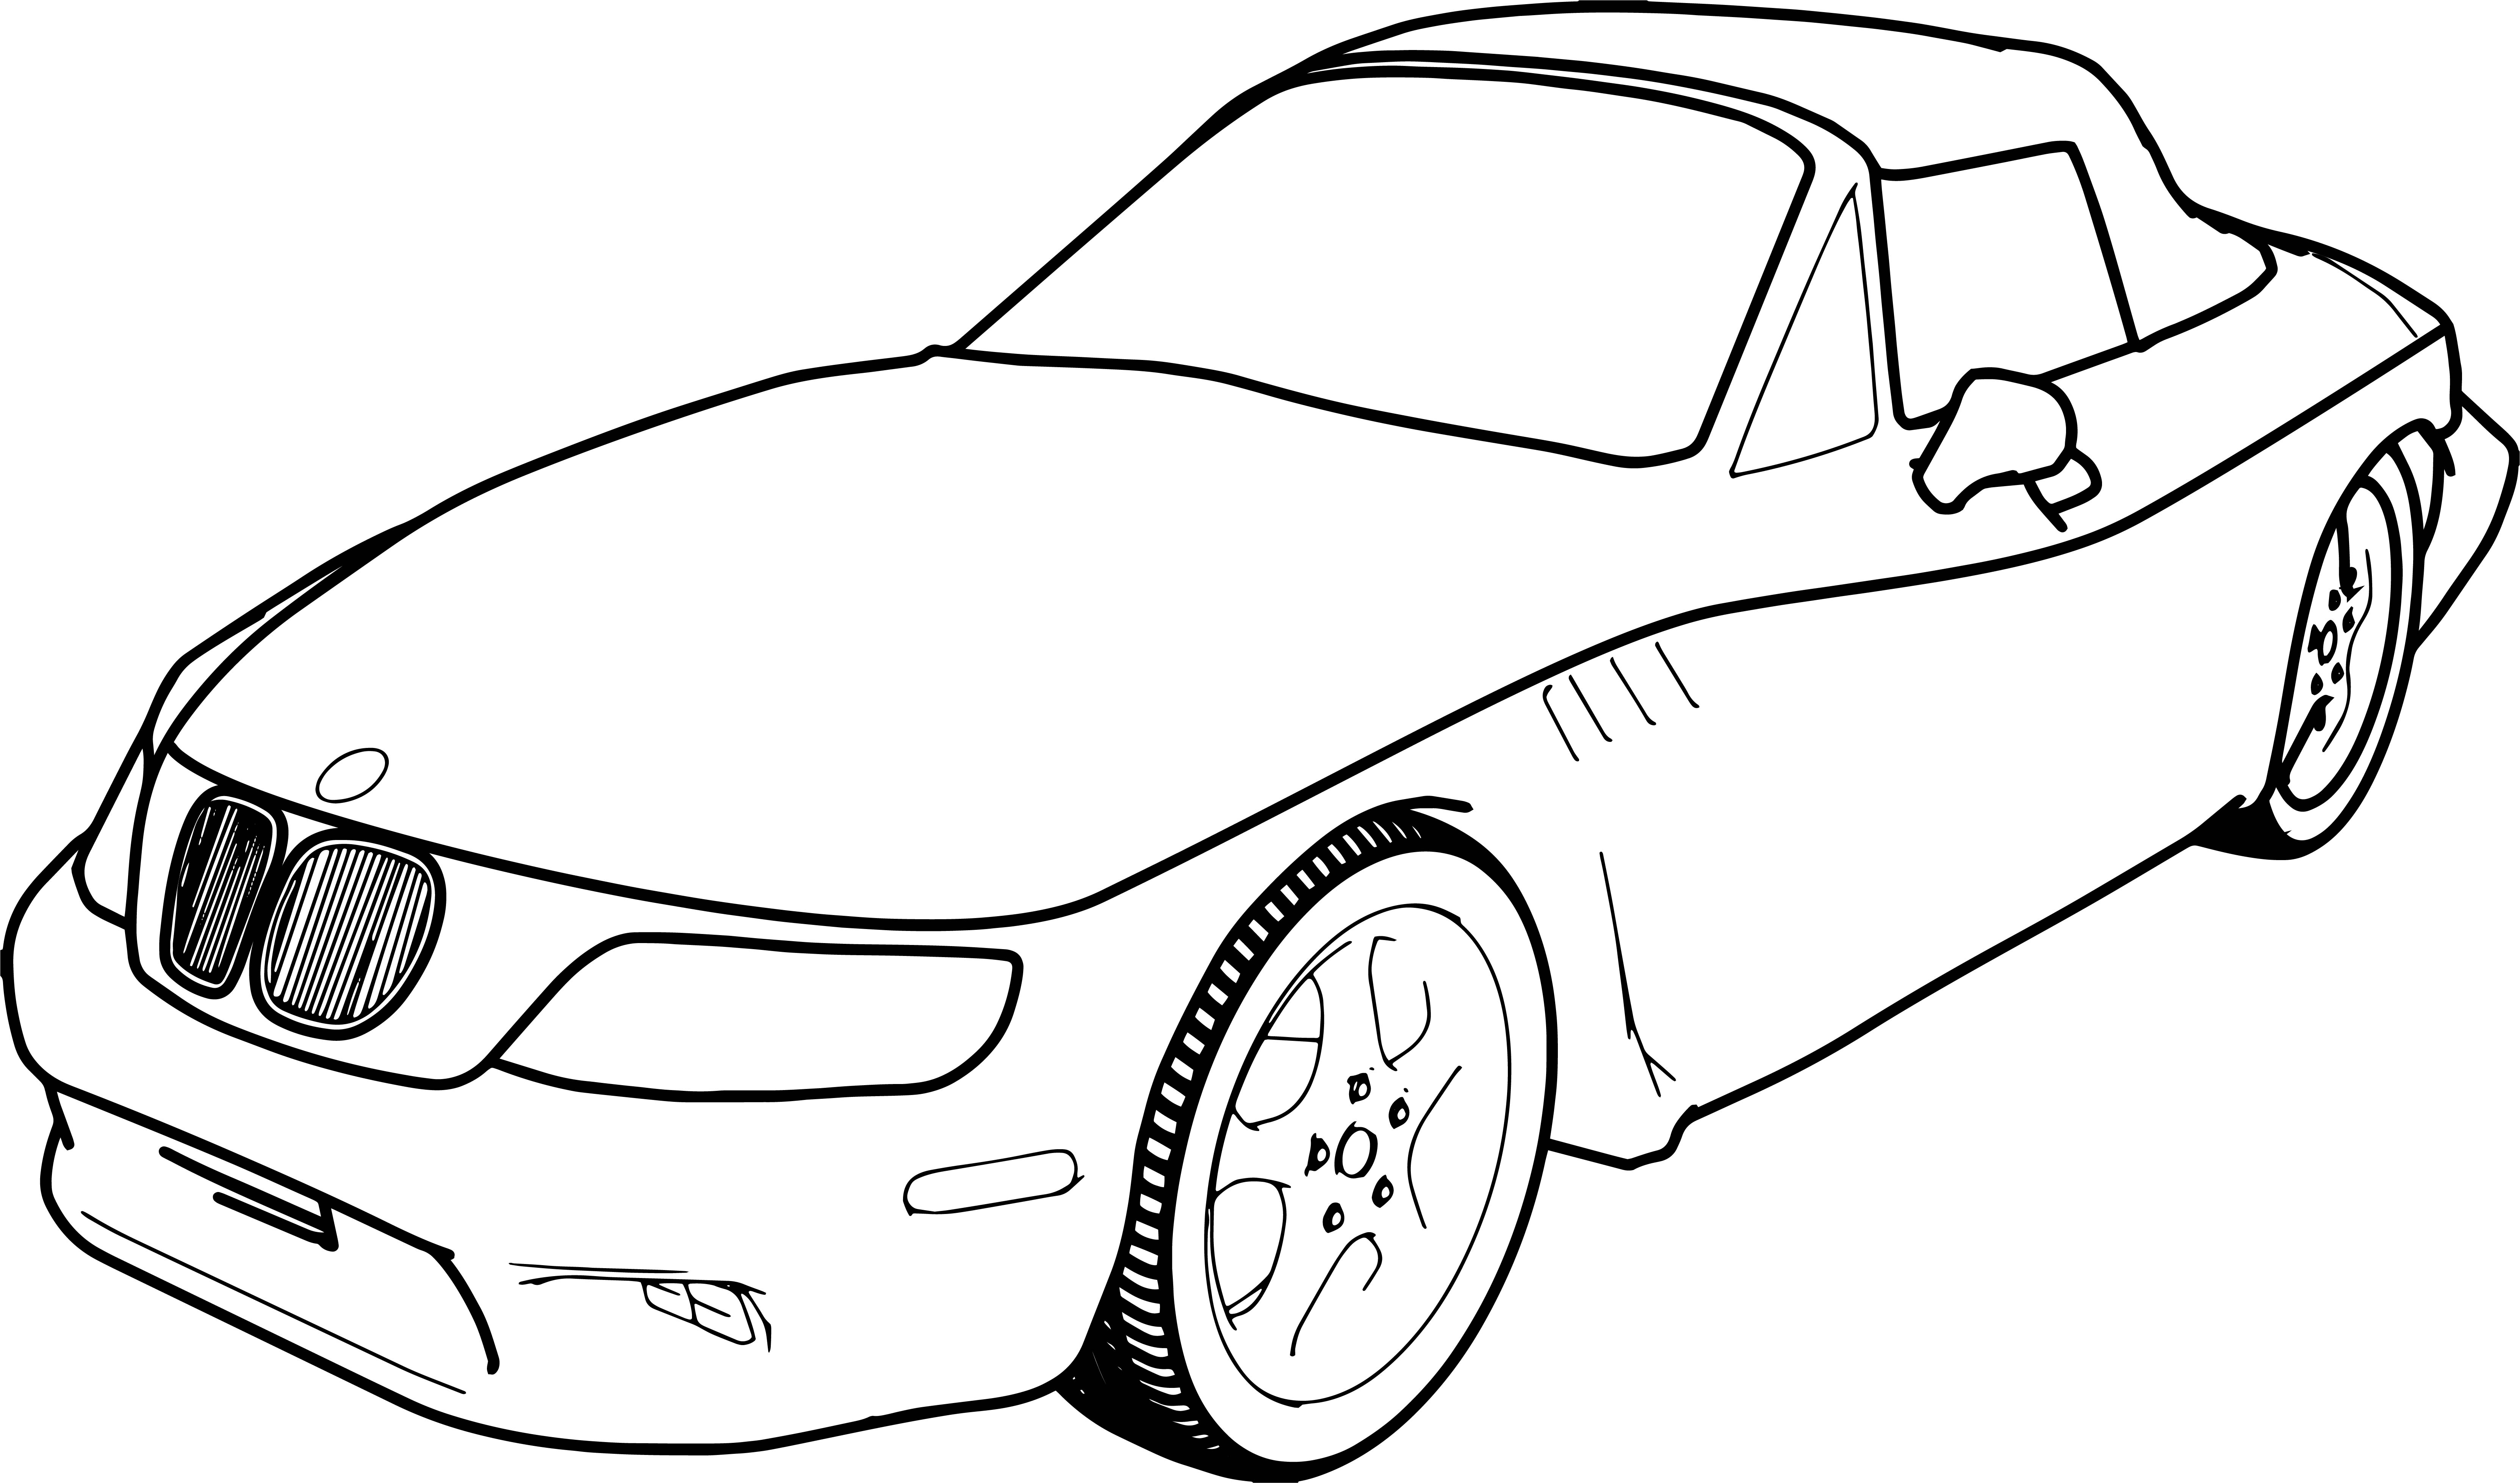 bmw race car coloring pages bmw coloring pages cars coloring pages race car pages car coloring race bmw